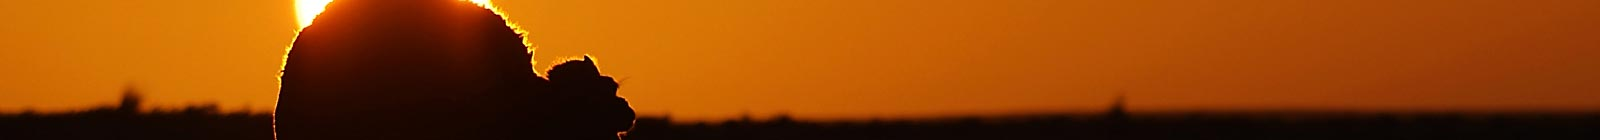 Camel escaping in red sun.